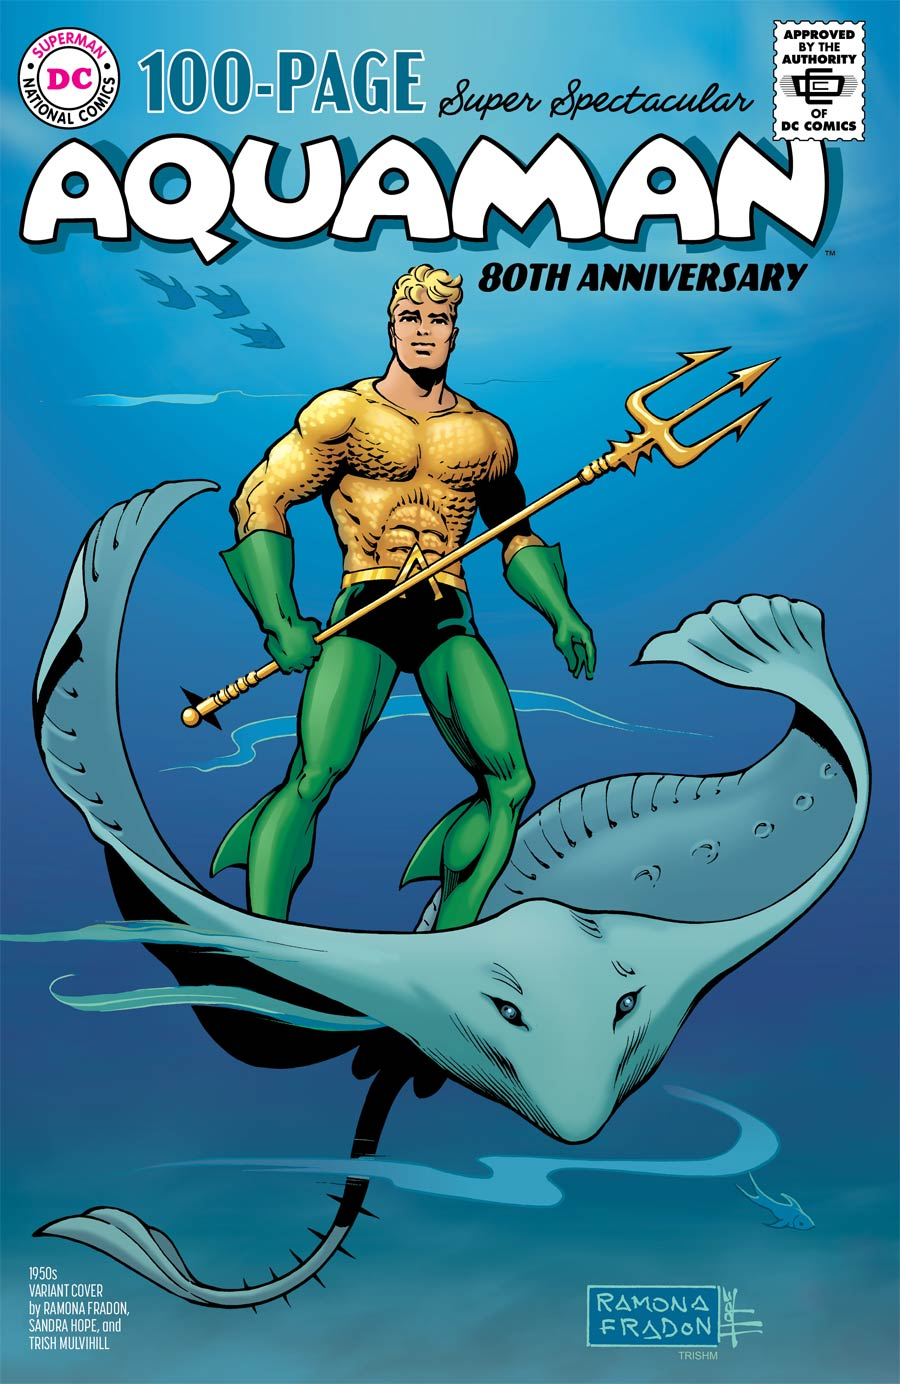 Aquaman-80th-Anniversary-100-Page-Spectacular-1-spoilers-0-3-1950s Aquaman-80th-Anniversary-100-Page-Spectacular-1-spoilers-0-3-1950s